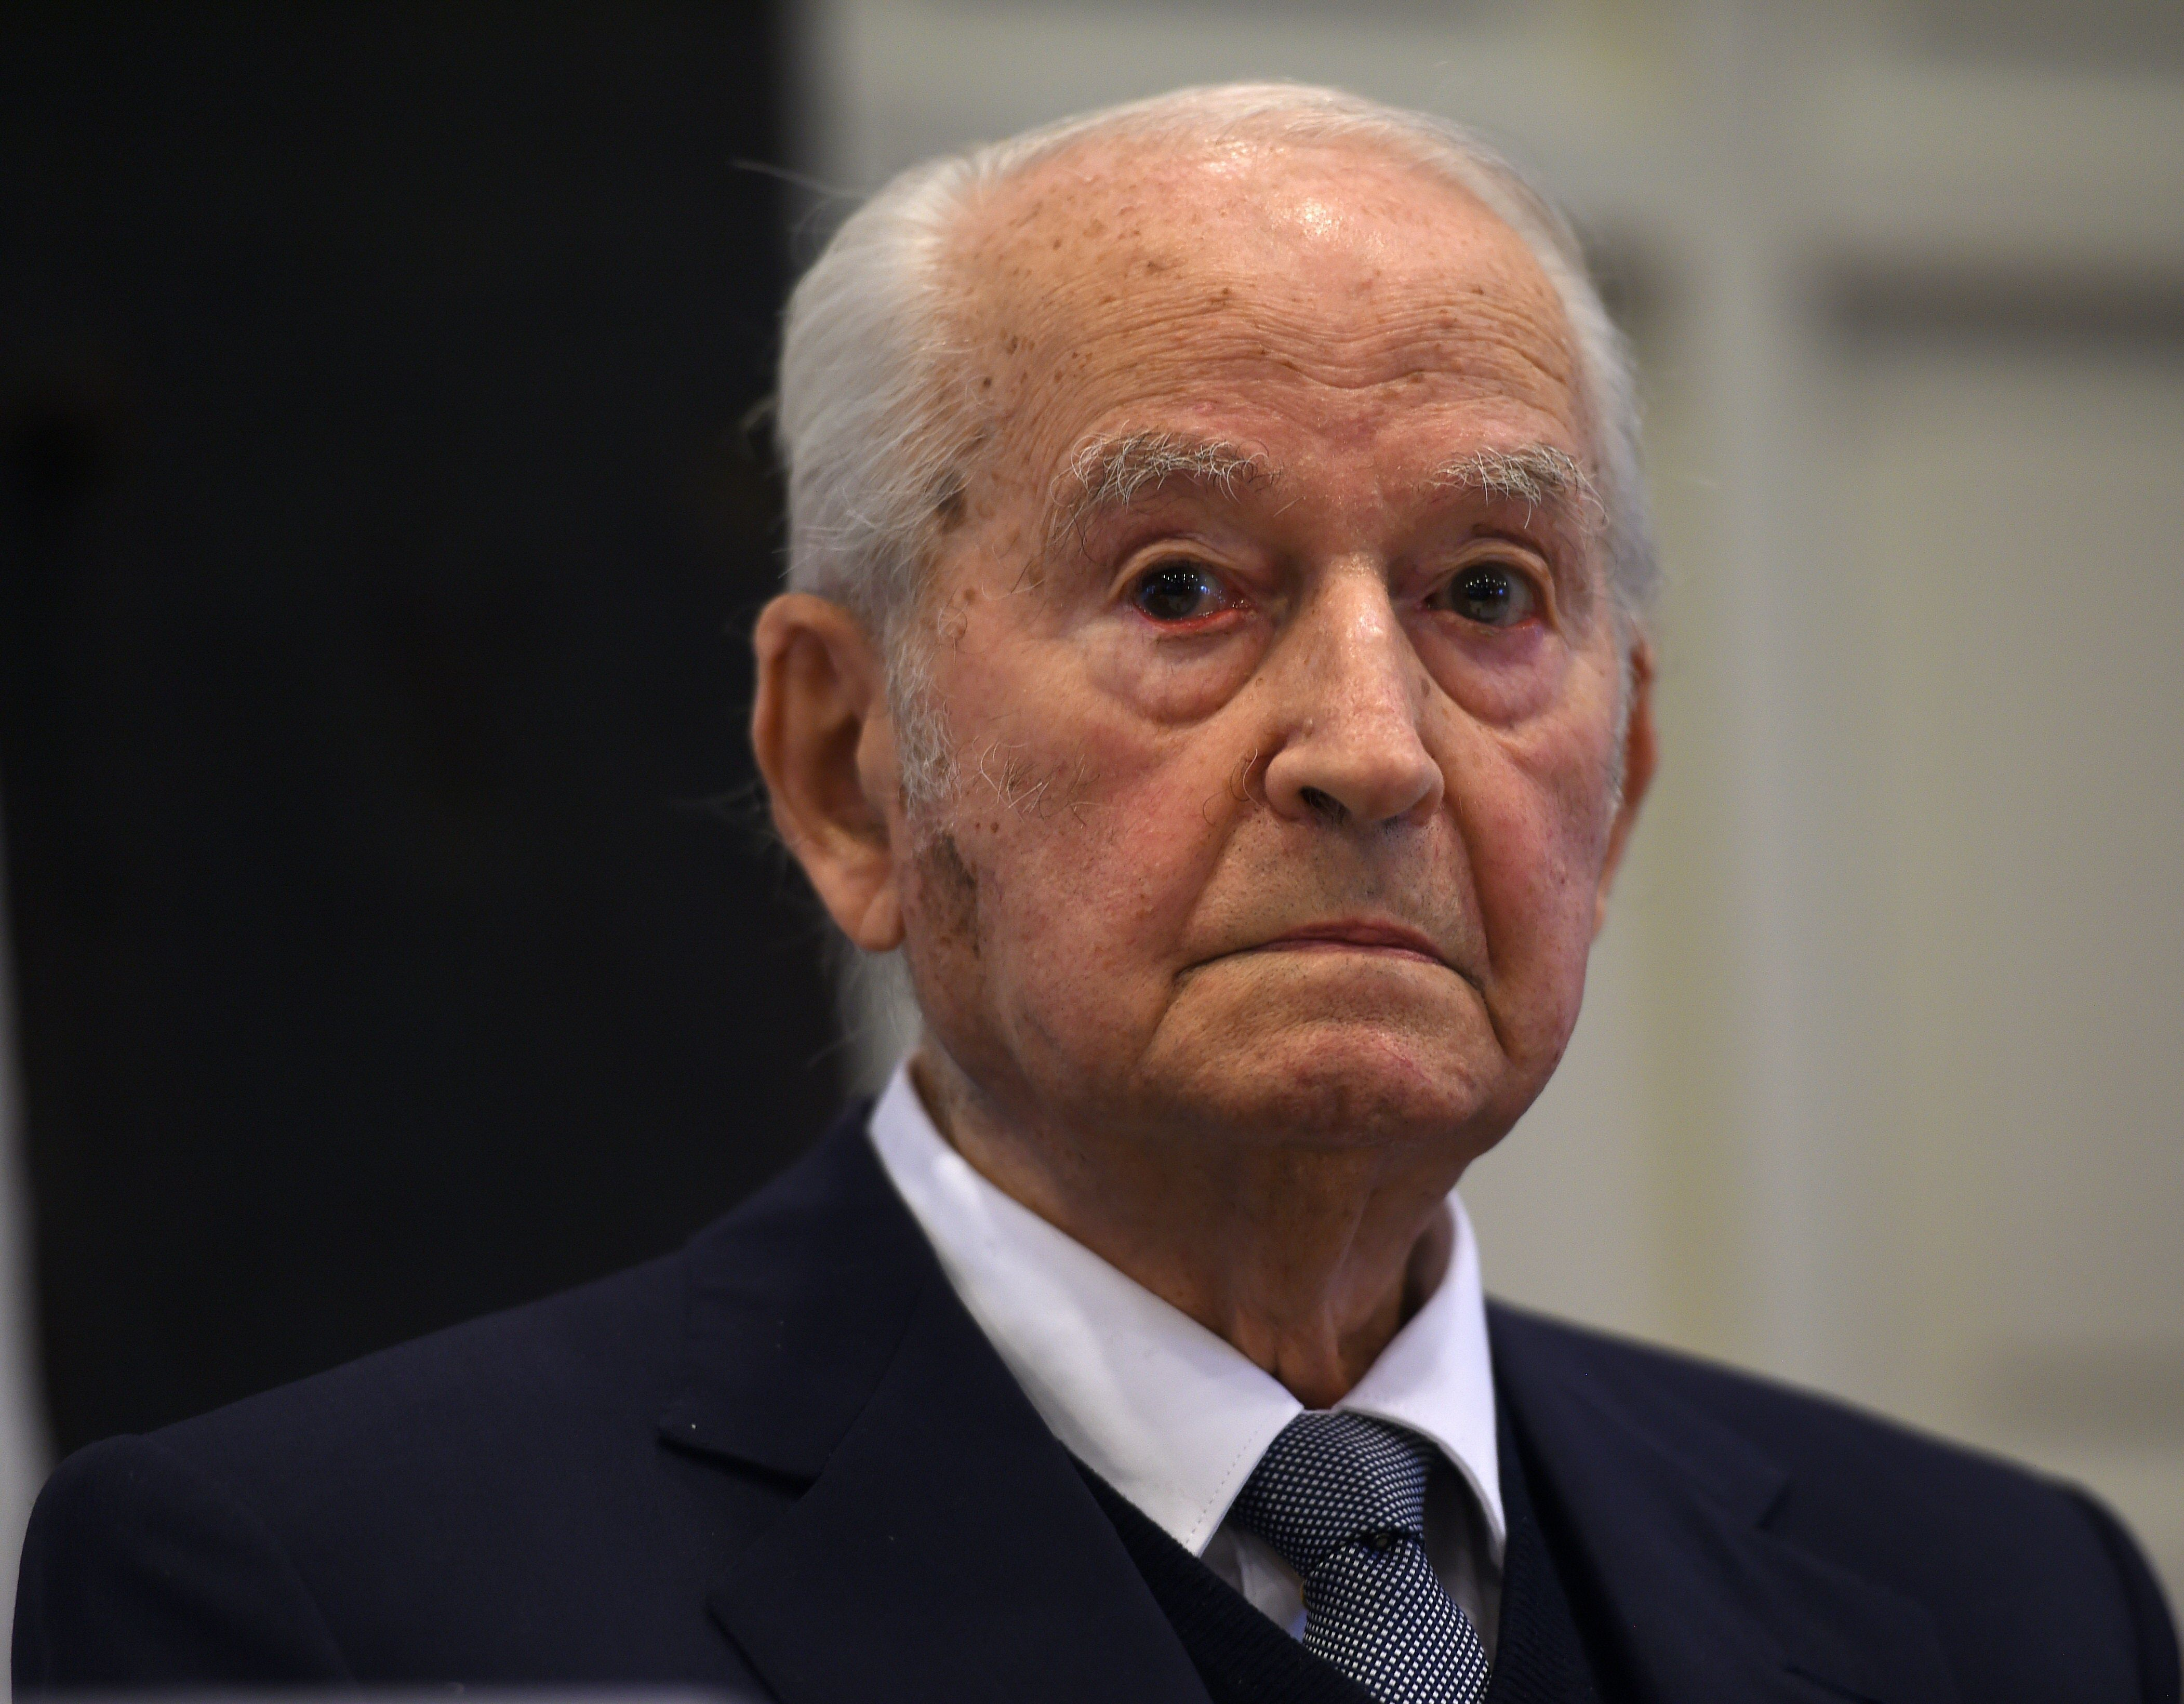 Former prisoner of Auschwitz extermination camp Leon Schwarzbaum takes part in a press conference in Detmold, western Germany, on February 10, 2016 ahead of a trial of a former SS man Reinhold Hanning.